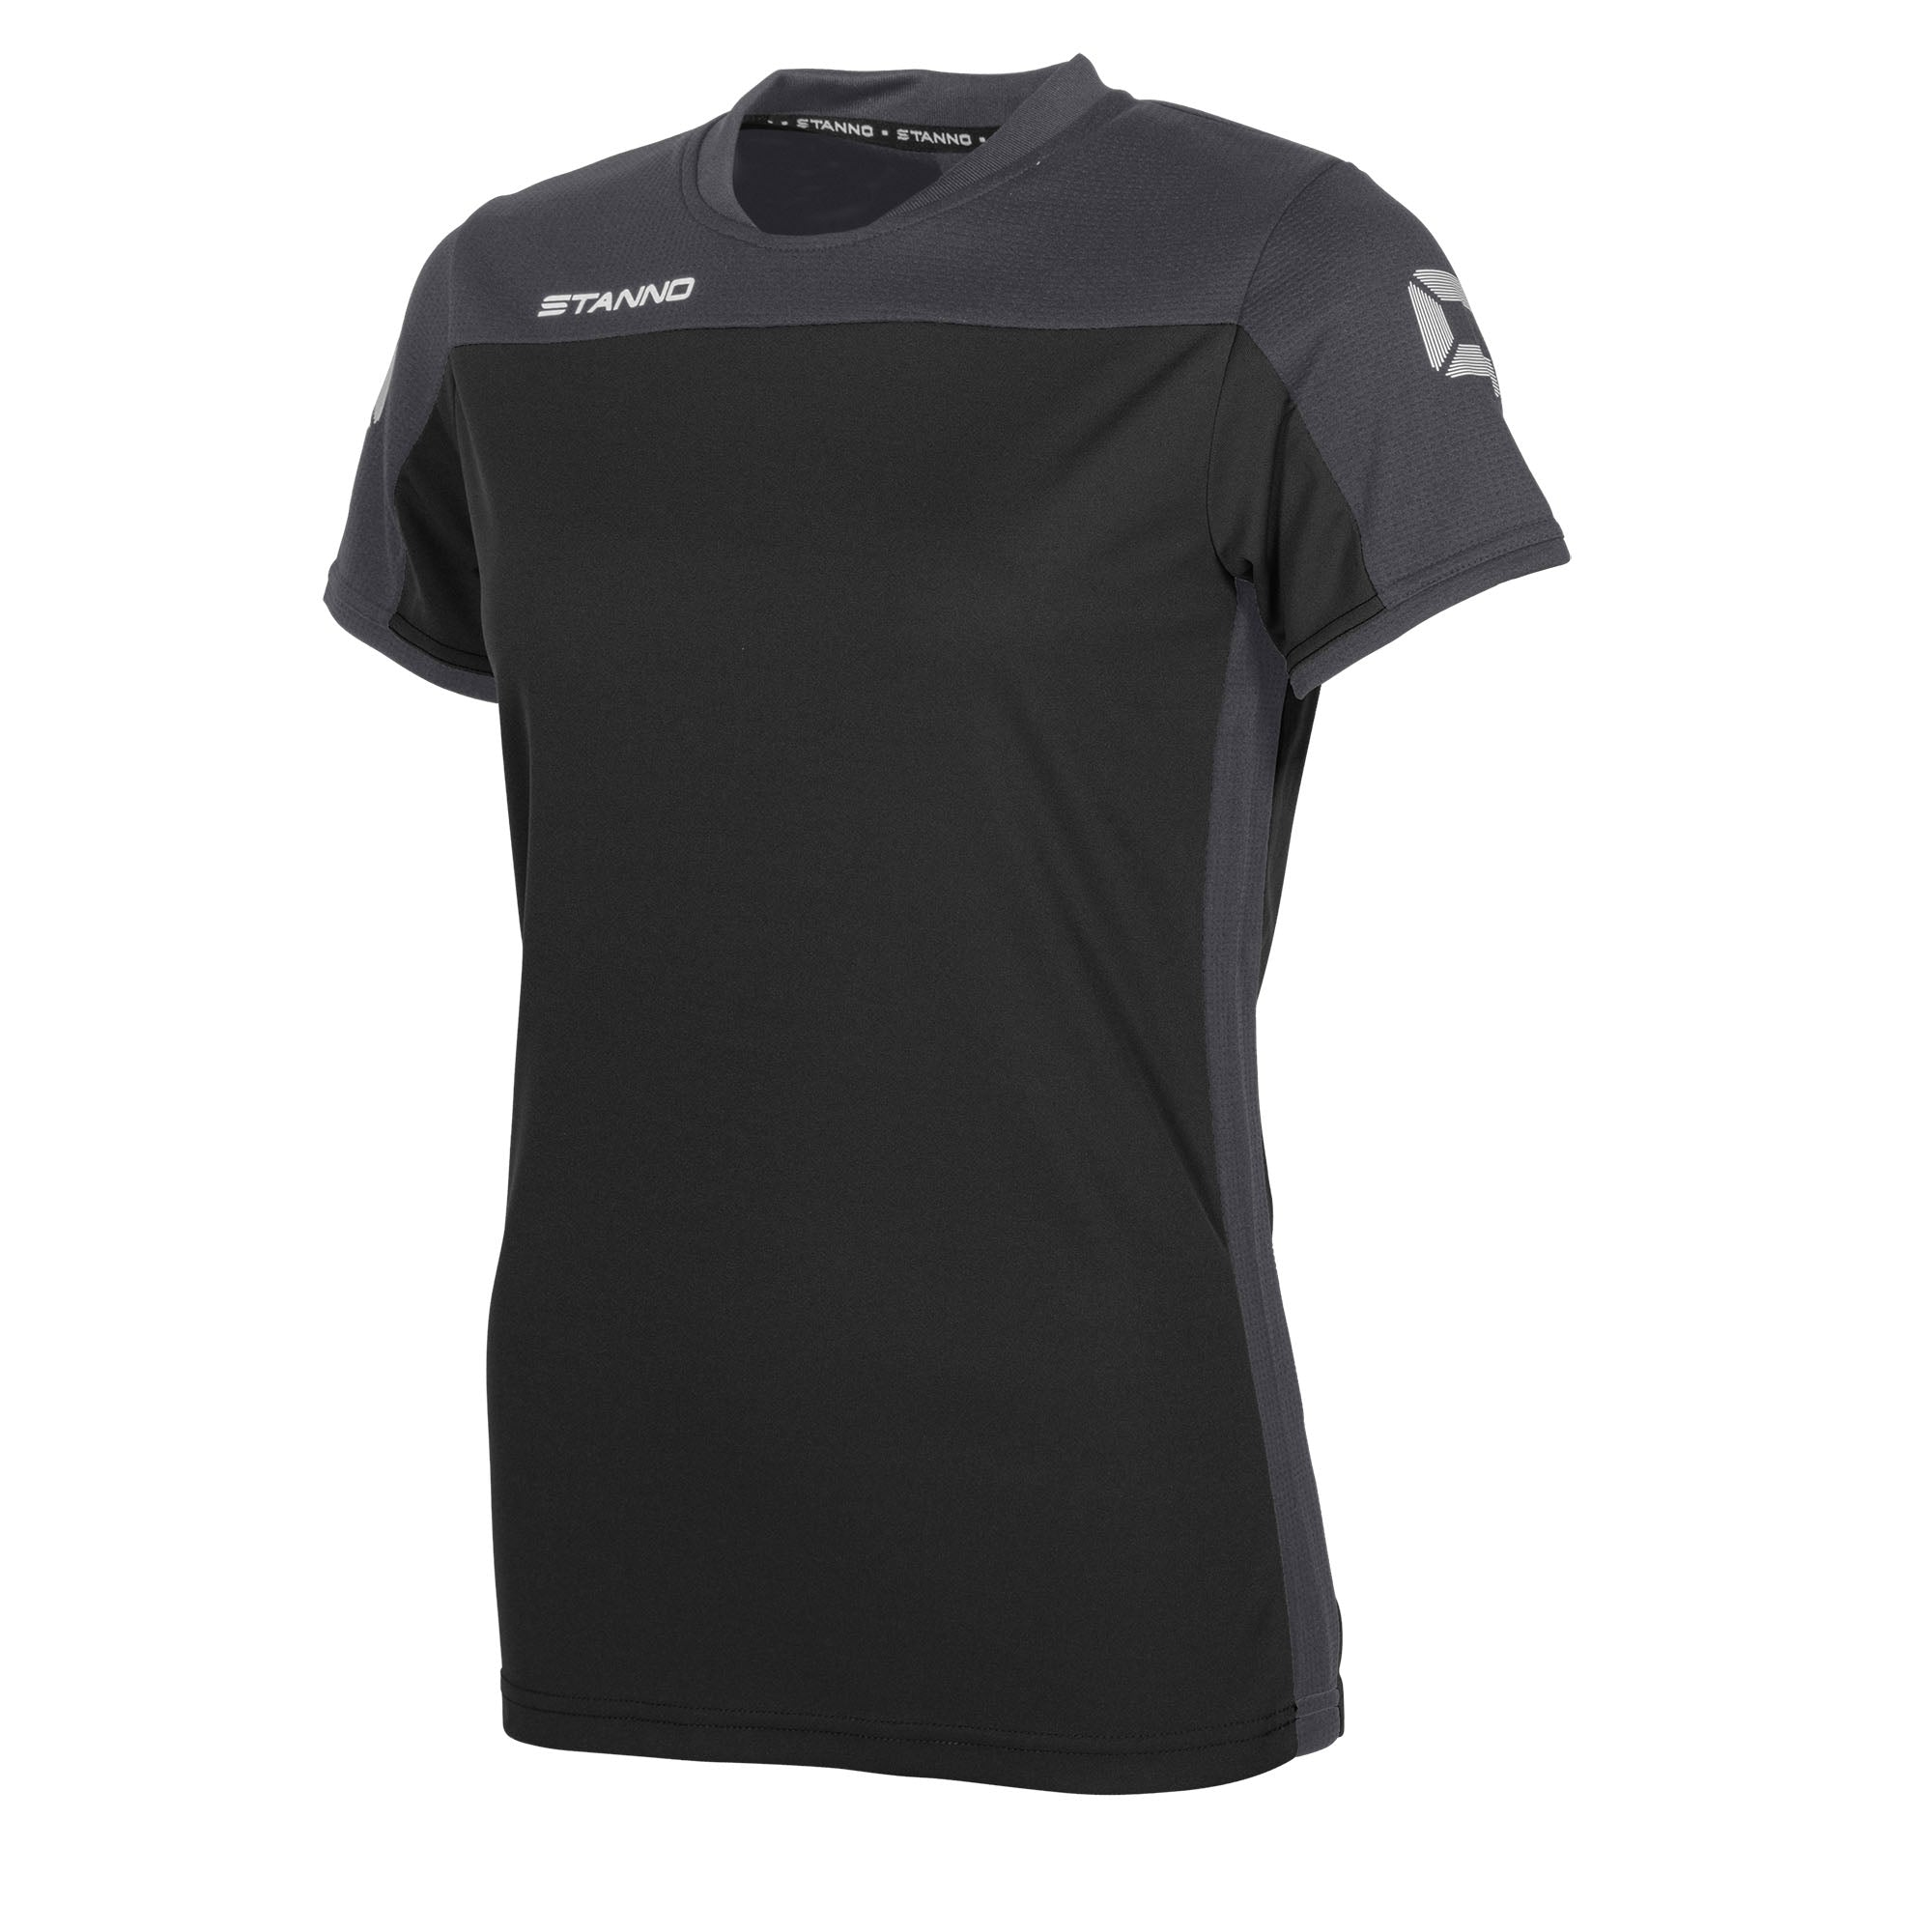 Stanno Pride ladies t-shirt in black, with mesh contrast anthracite shoulder and side panel